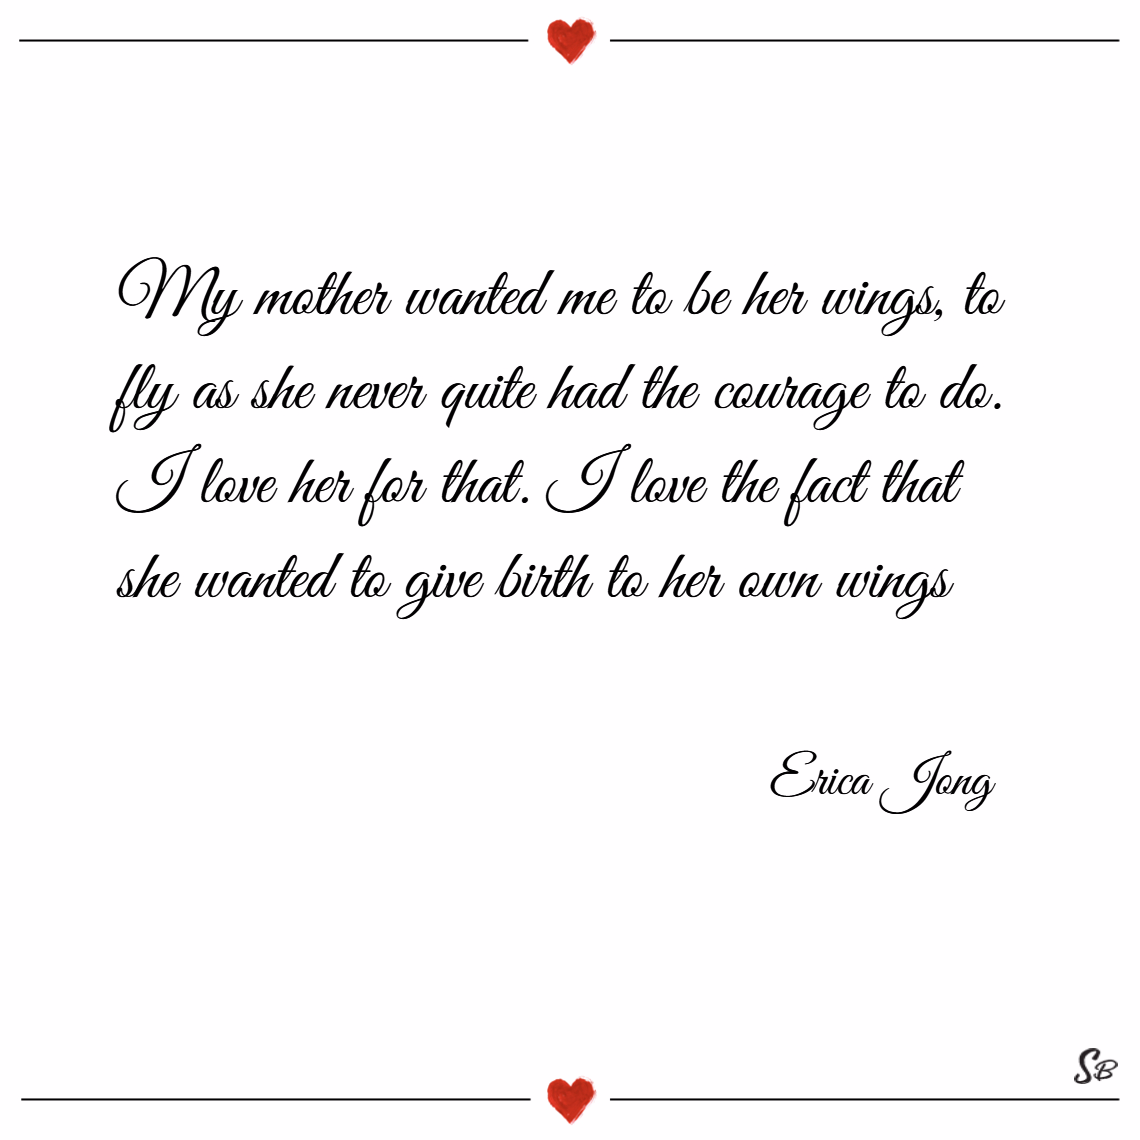 My mother wanted me to be her wings. – erica jong